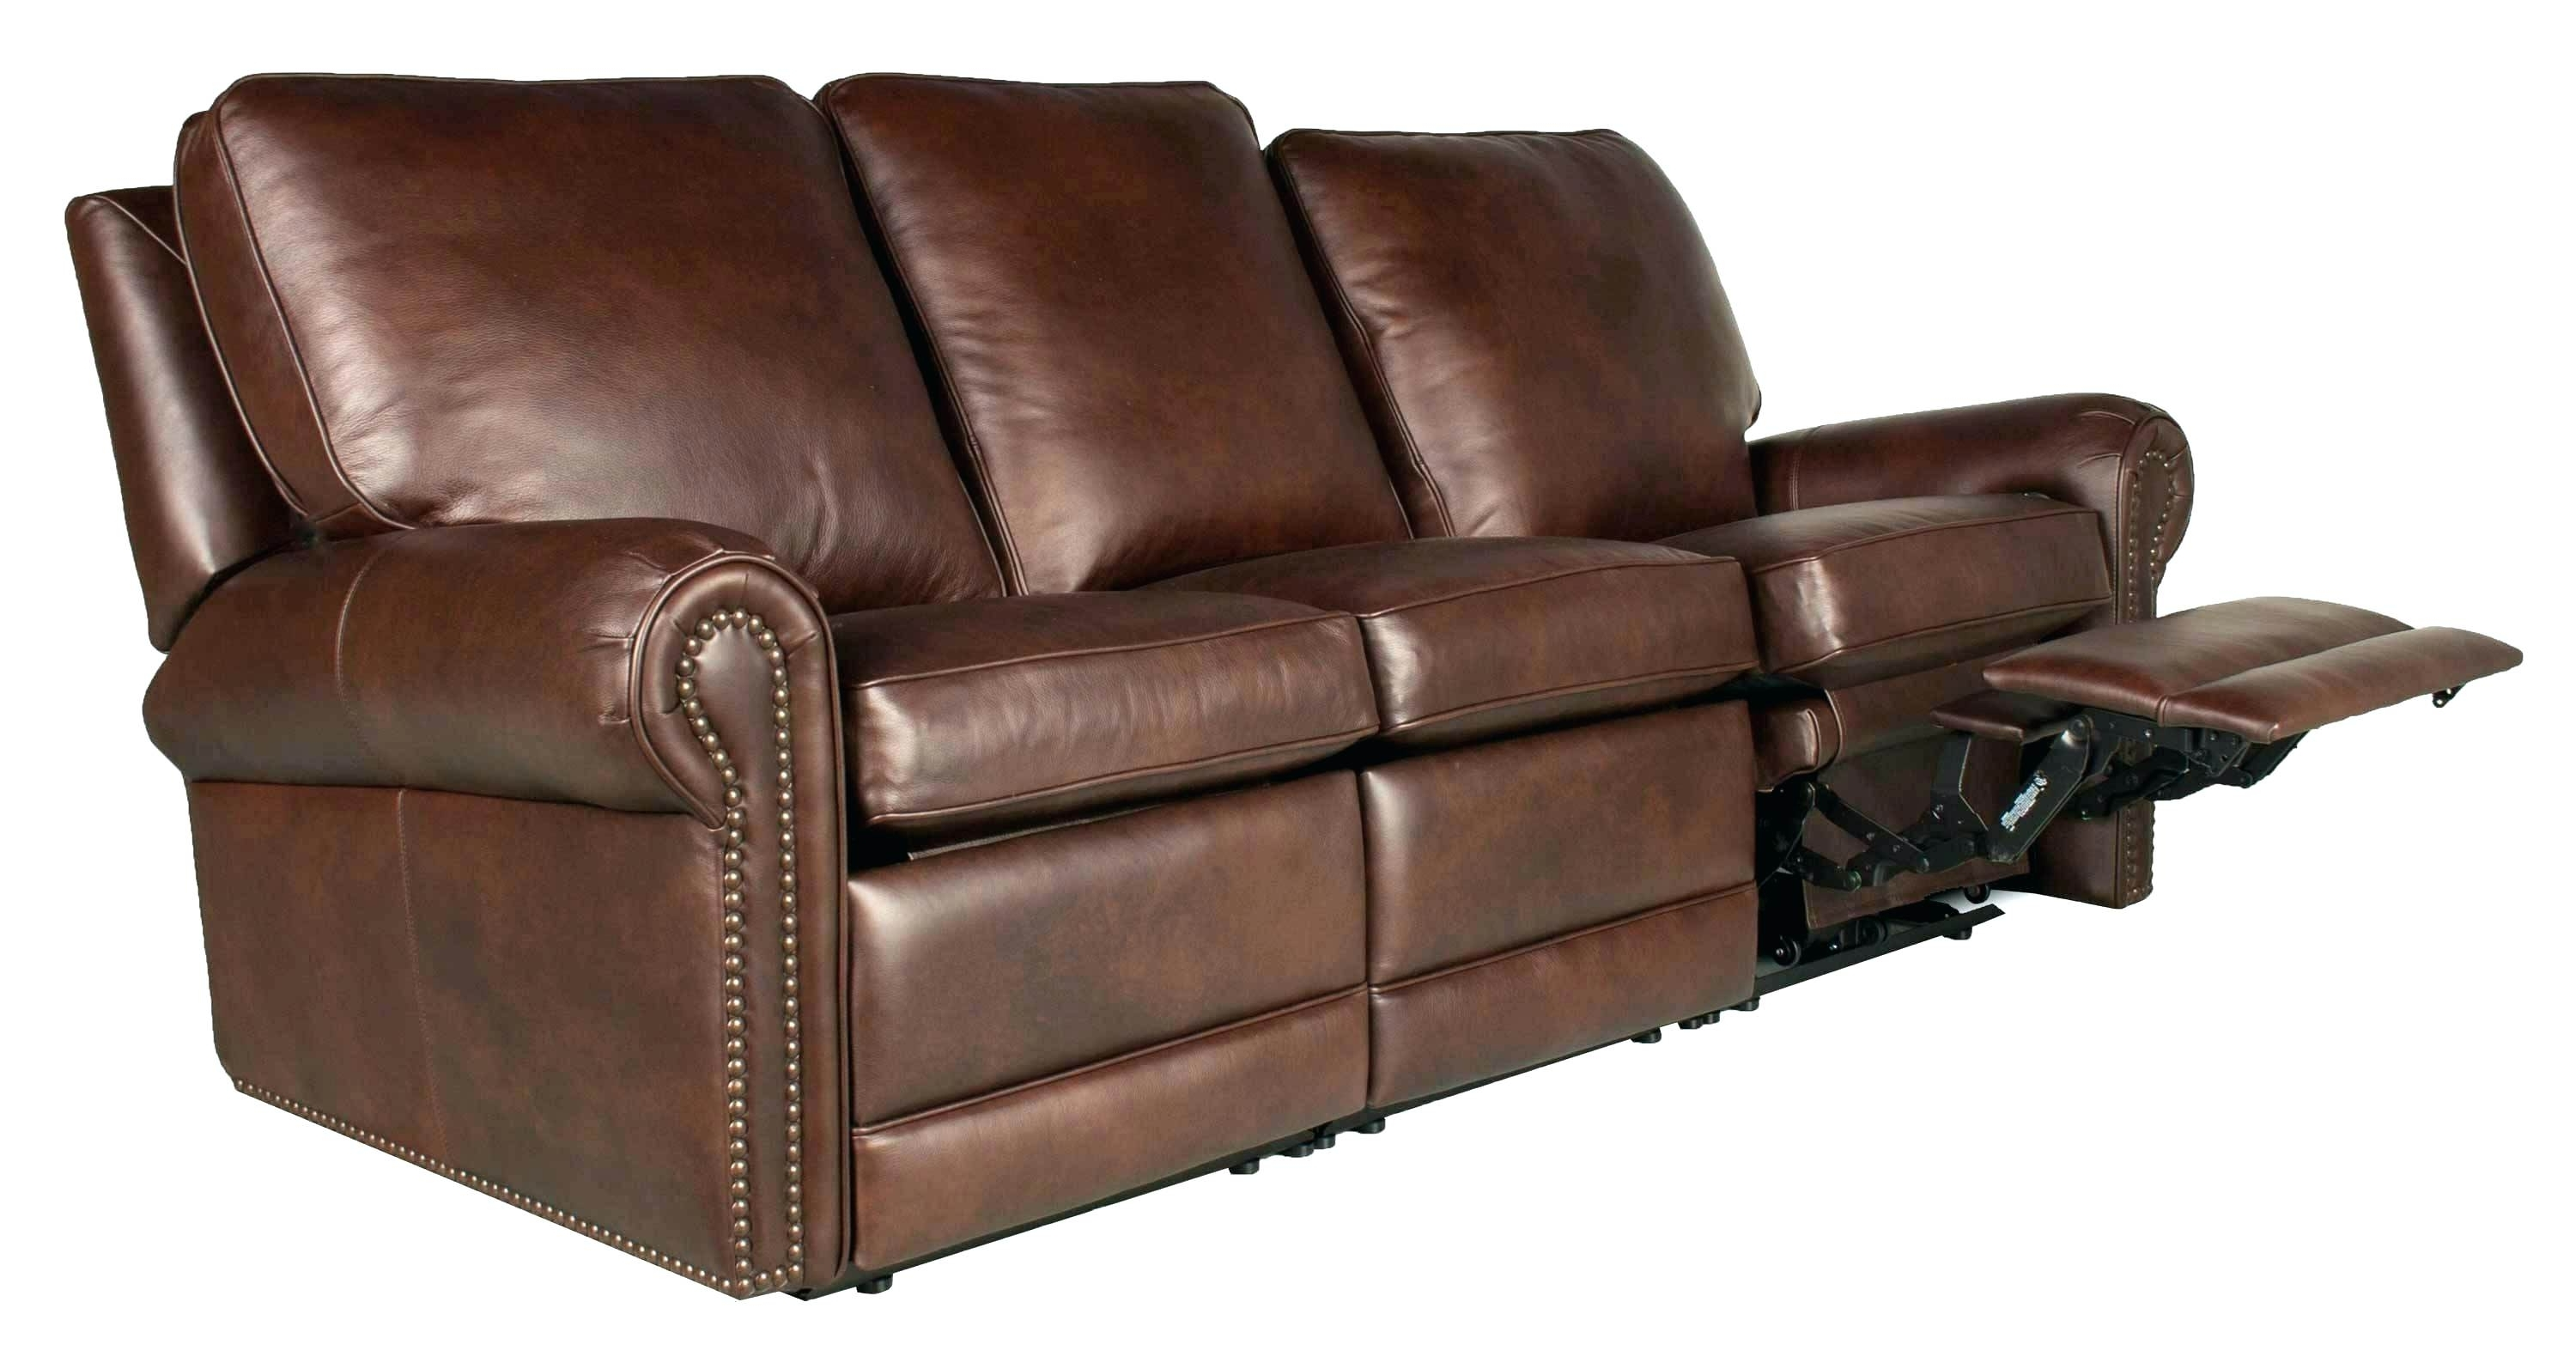 Widely Used Berkline Sofas With Regard To Berkline Sofa 1 Chaise Furniture Recliners Sleeper Bed (View 10 of 20)